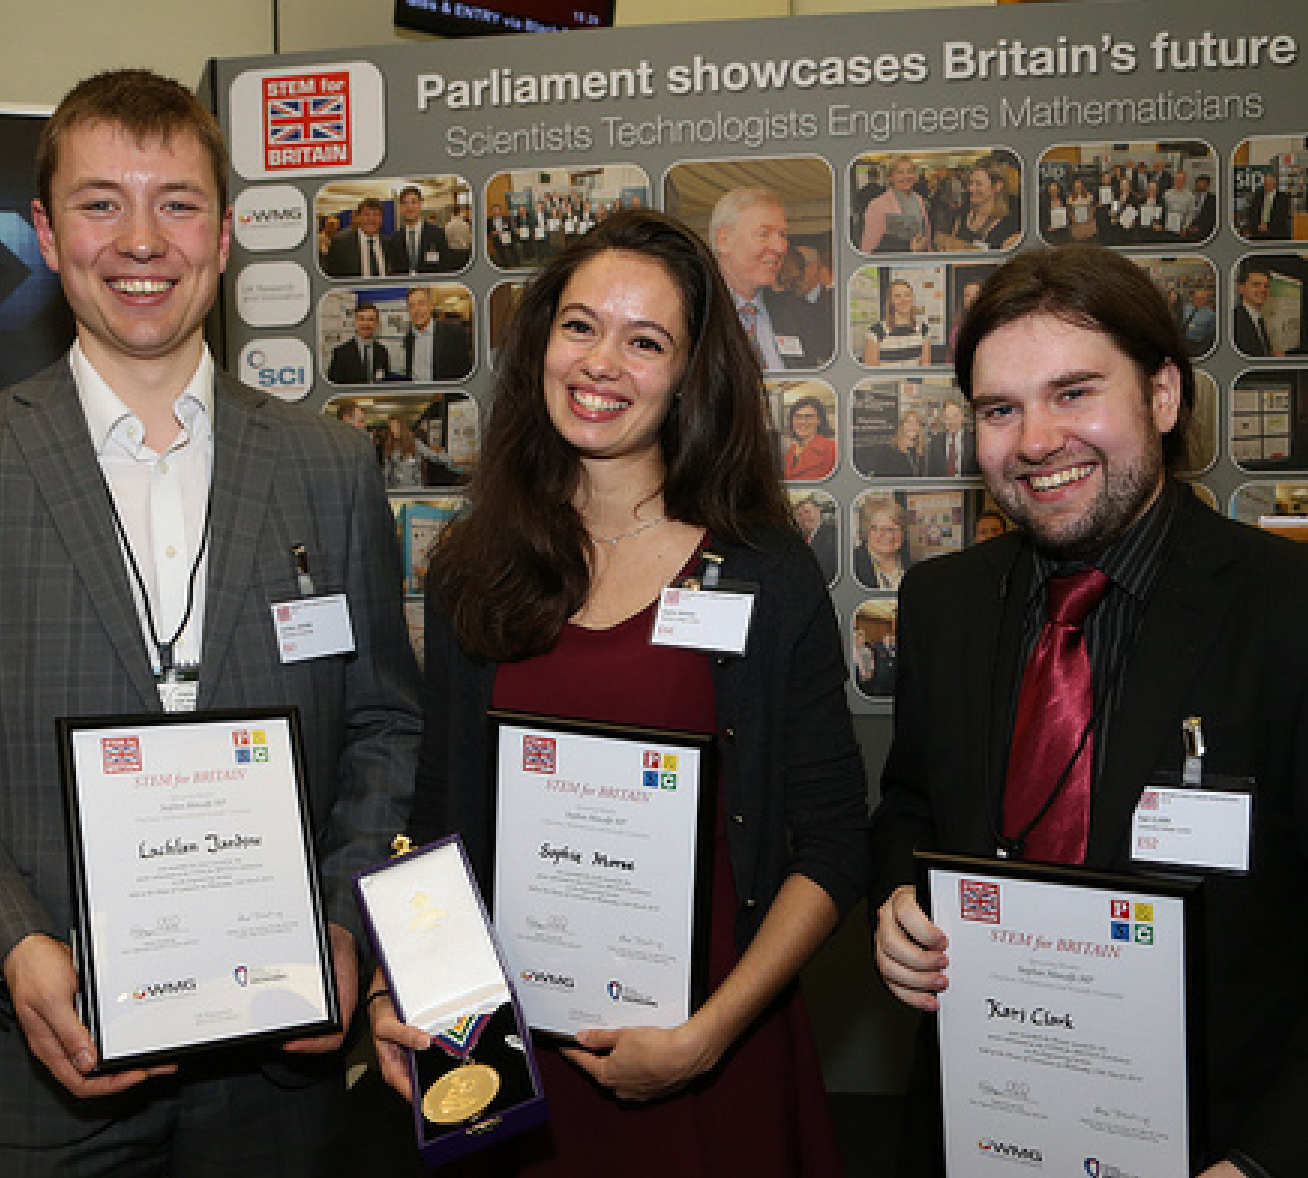 Smiley photo of the three competition winners